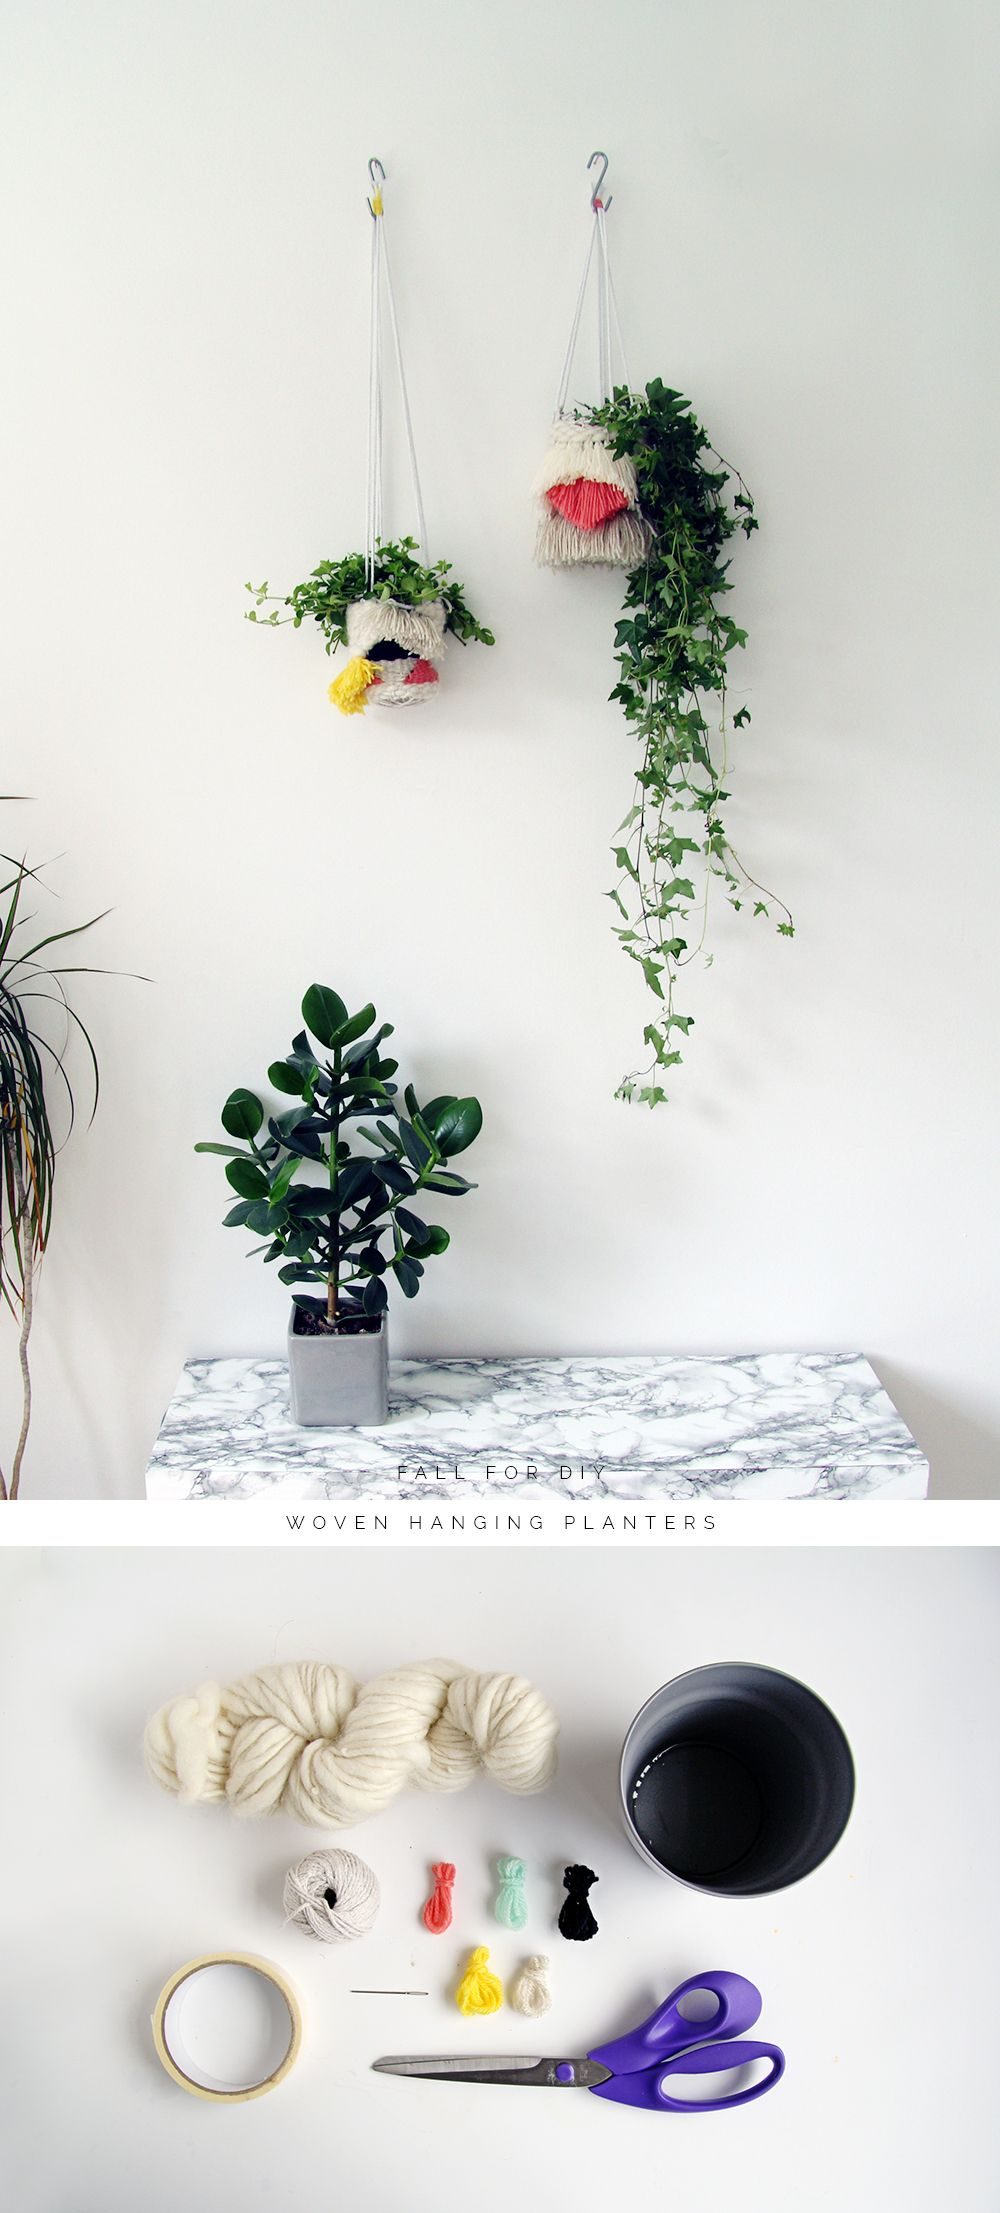 Combine hanging planters with a modern take